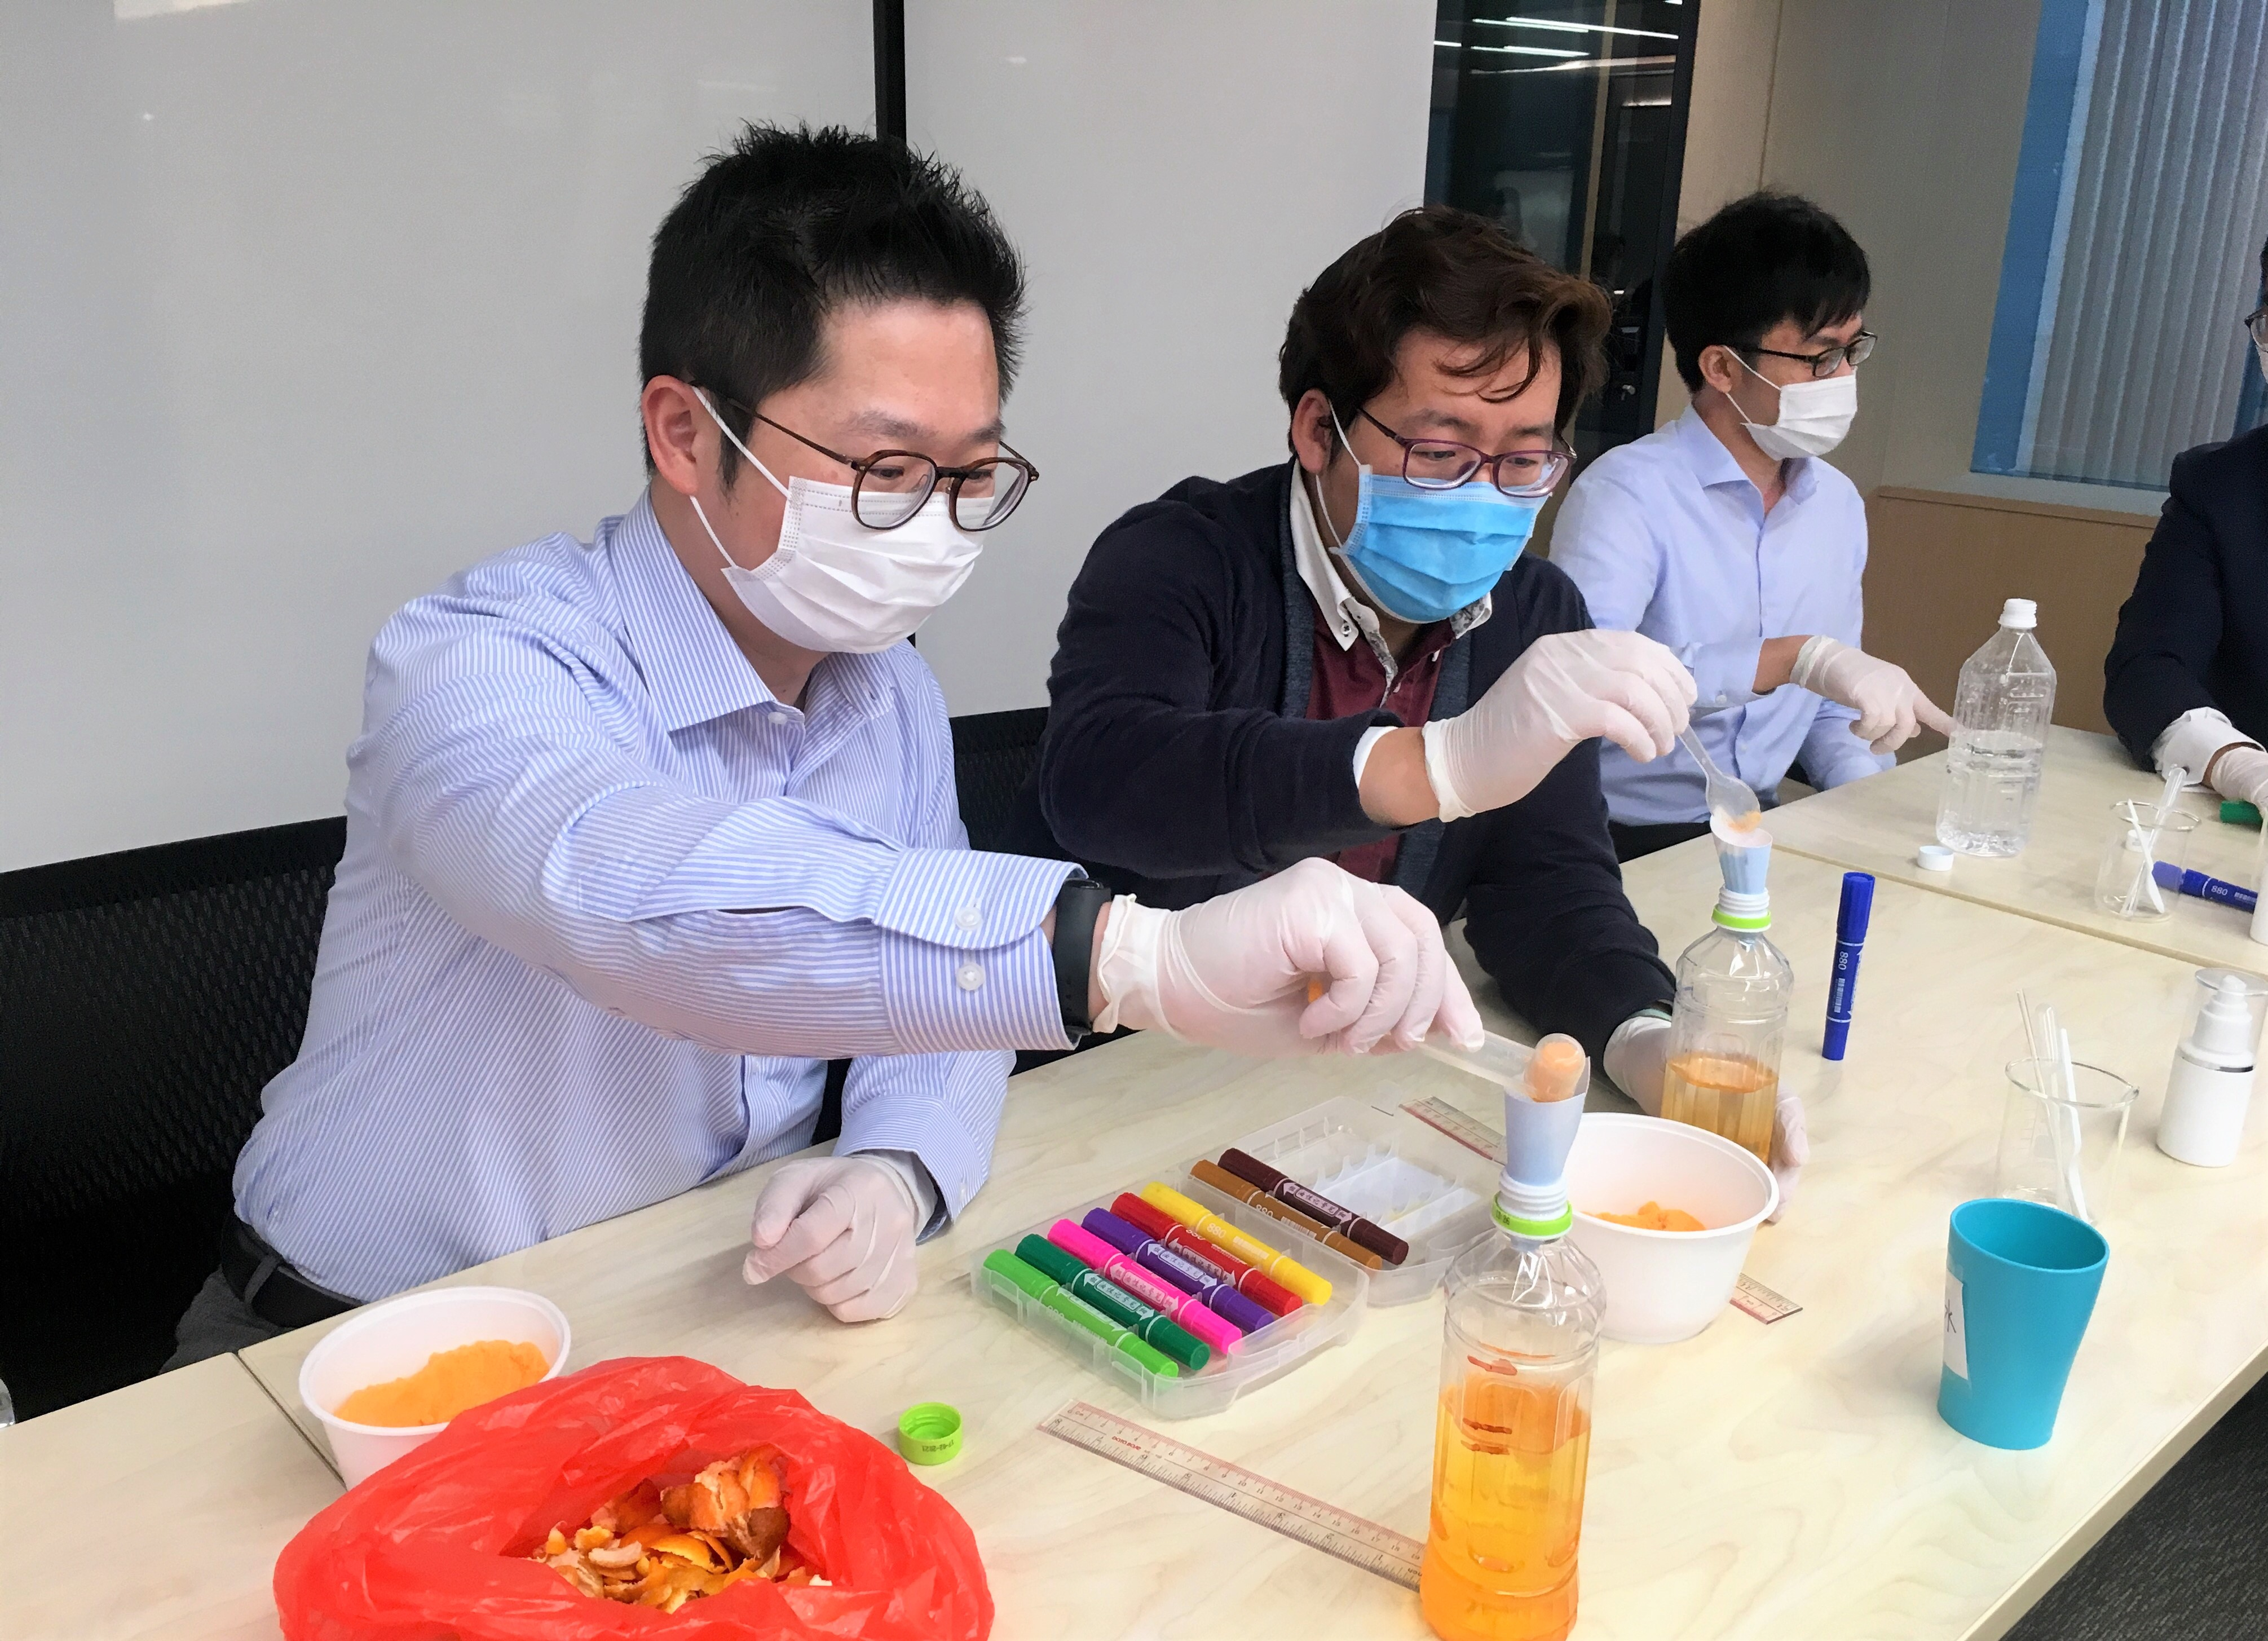 We always accord high priority to the health and well-being of our employees. We brought the Handmade Alcohol Sanitiser and Eco-friendly Detergent Workshop to our employees in collaboration with 世界綠色組織 (World Green Organisation). The trainer also shared with our employees about contributing to the environment by up-cycling food waste and relaxing themselves through Zentangle experience. We are committed to taking care of the well-being of our employees. Let's be vigilant and stay healthy!